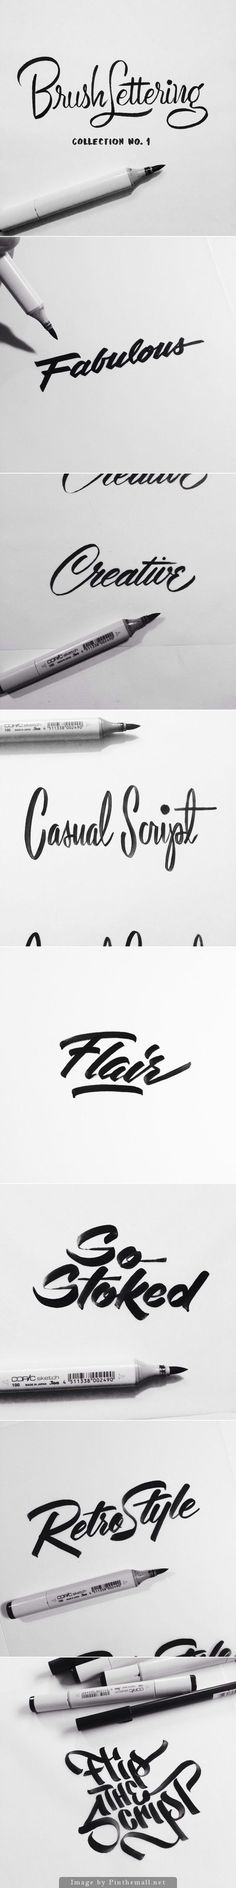 Brush Lettering Collection No. 1 is an exploration of achieving different brush script lettering styles using one writing instrument - a Copic Sketch marker | Designer: Neil Secretario: